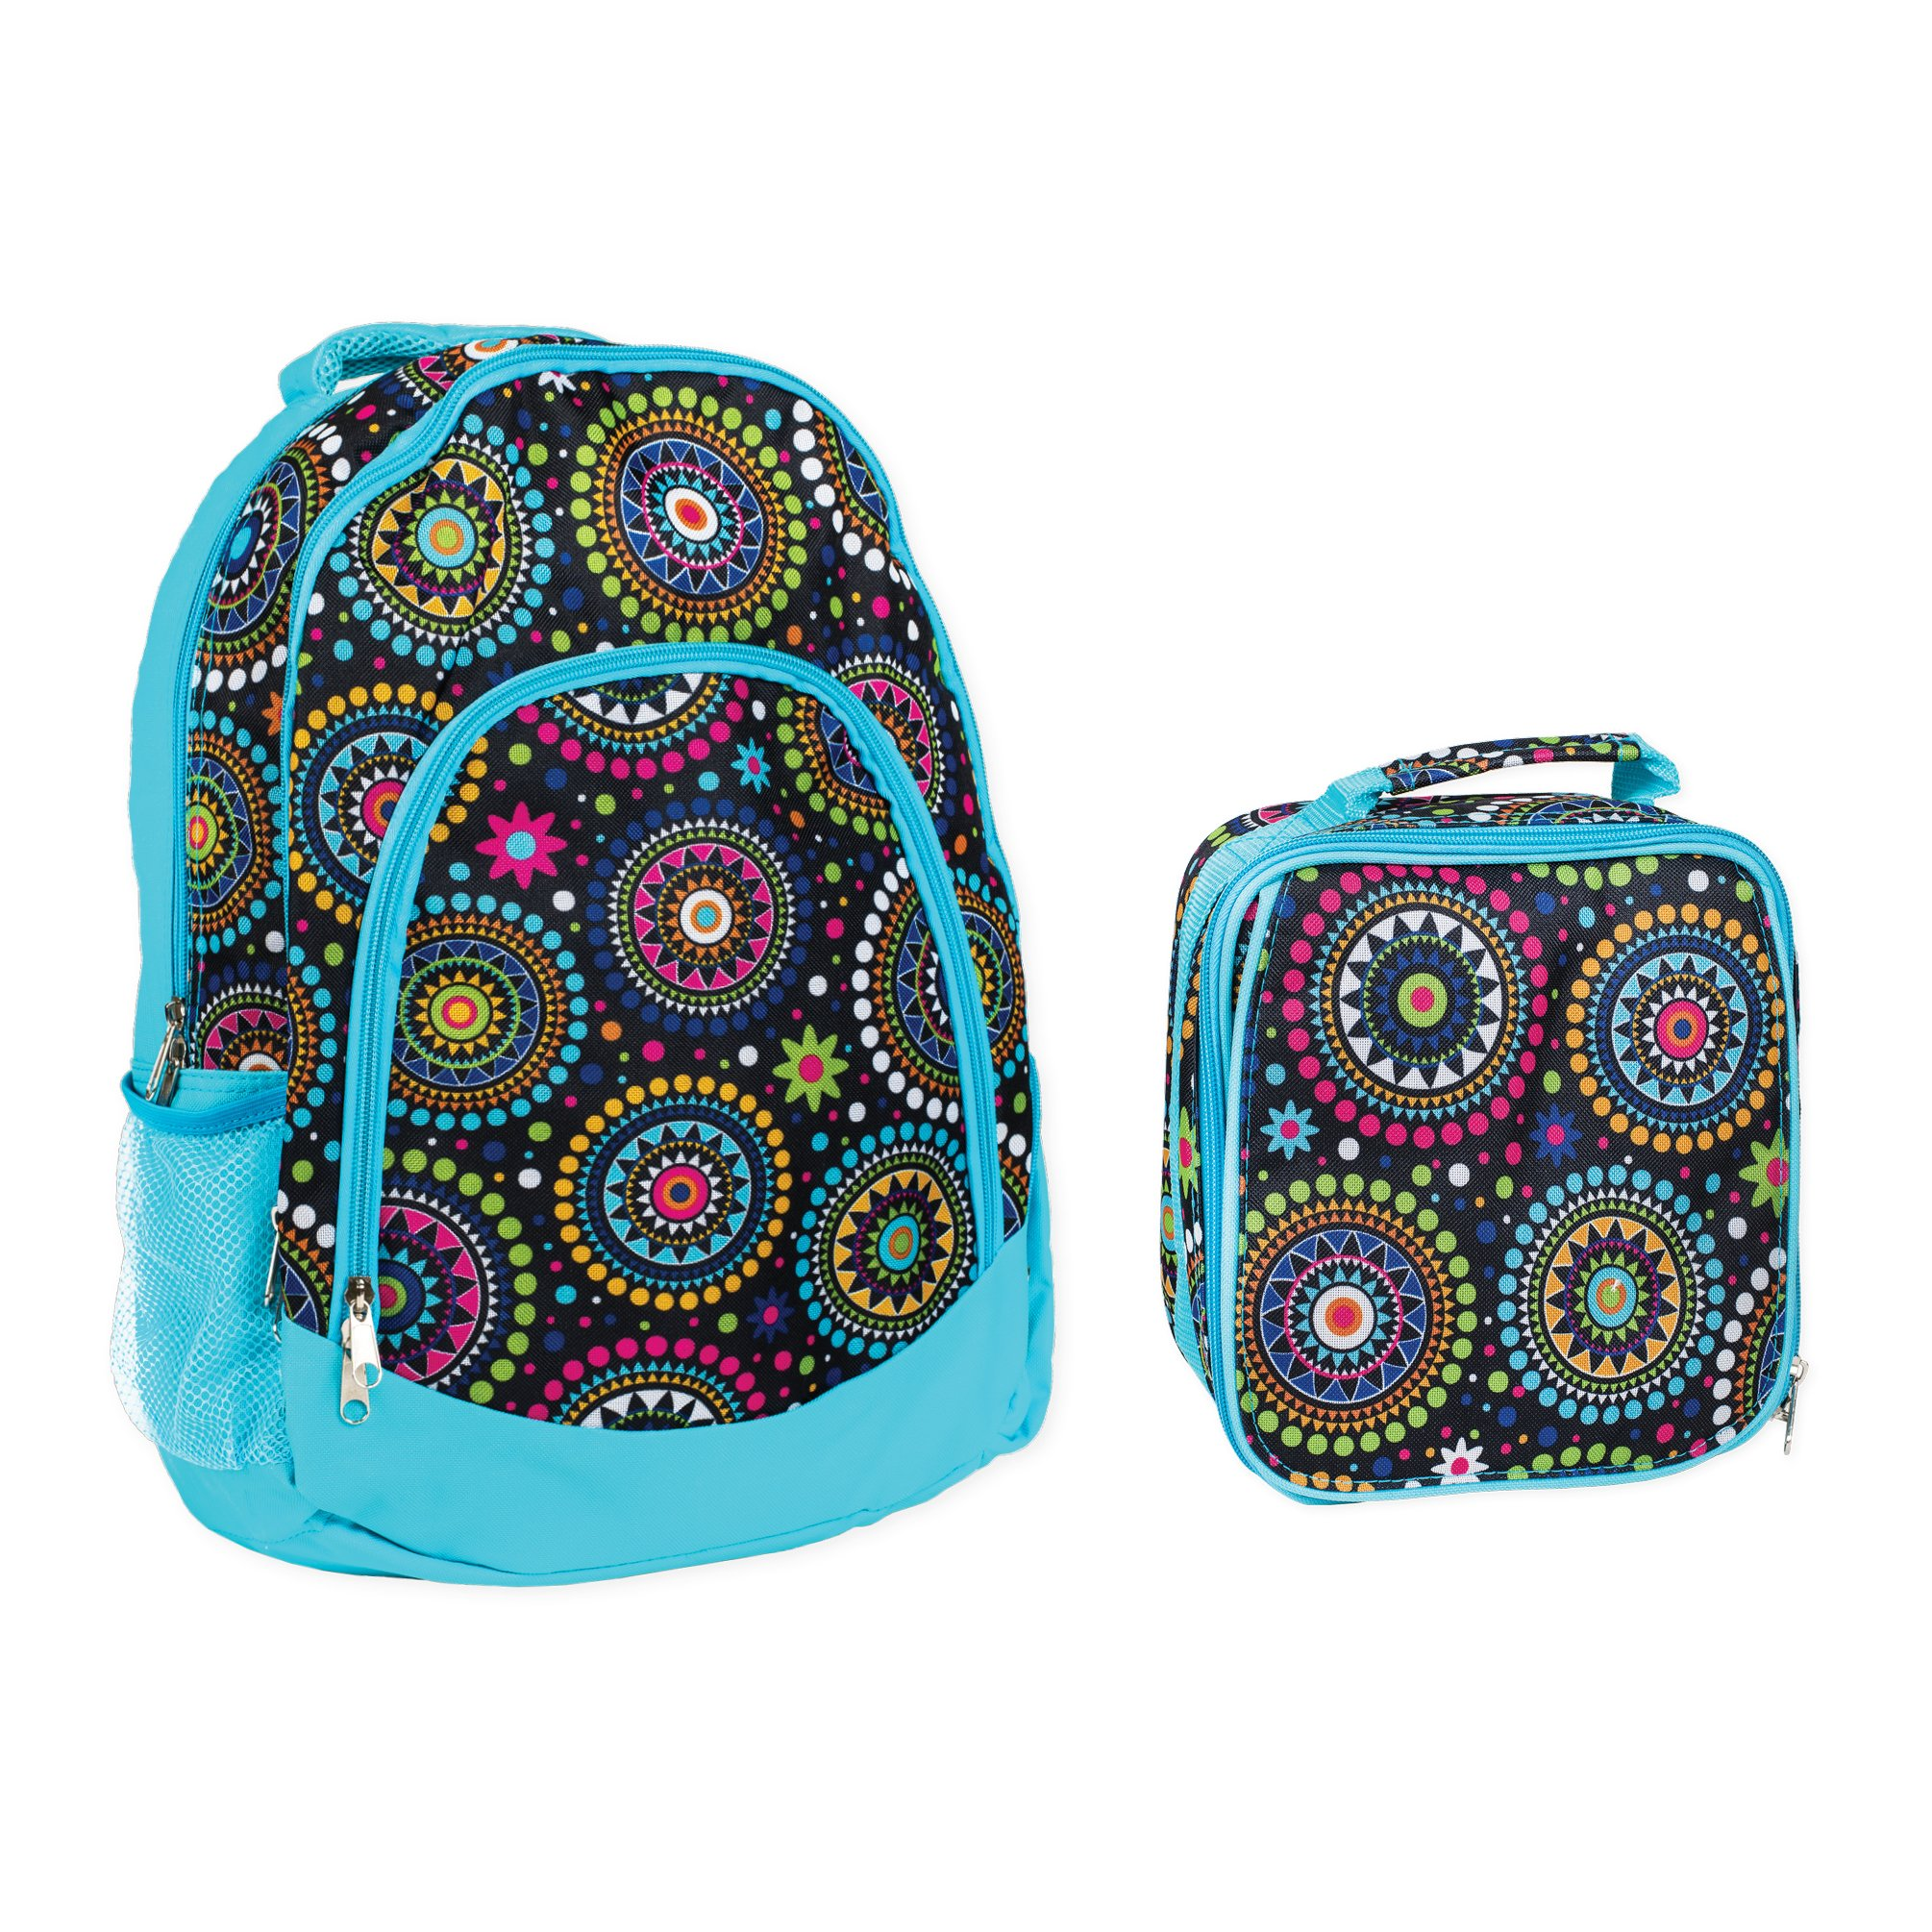 Reinforced Water Resistant School Backpack and Insulated Lunch Bag Set - Blue Vibrant Medallion by Class Collections